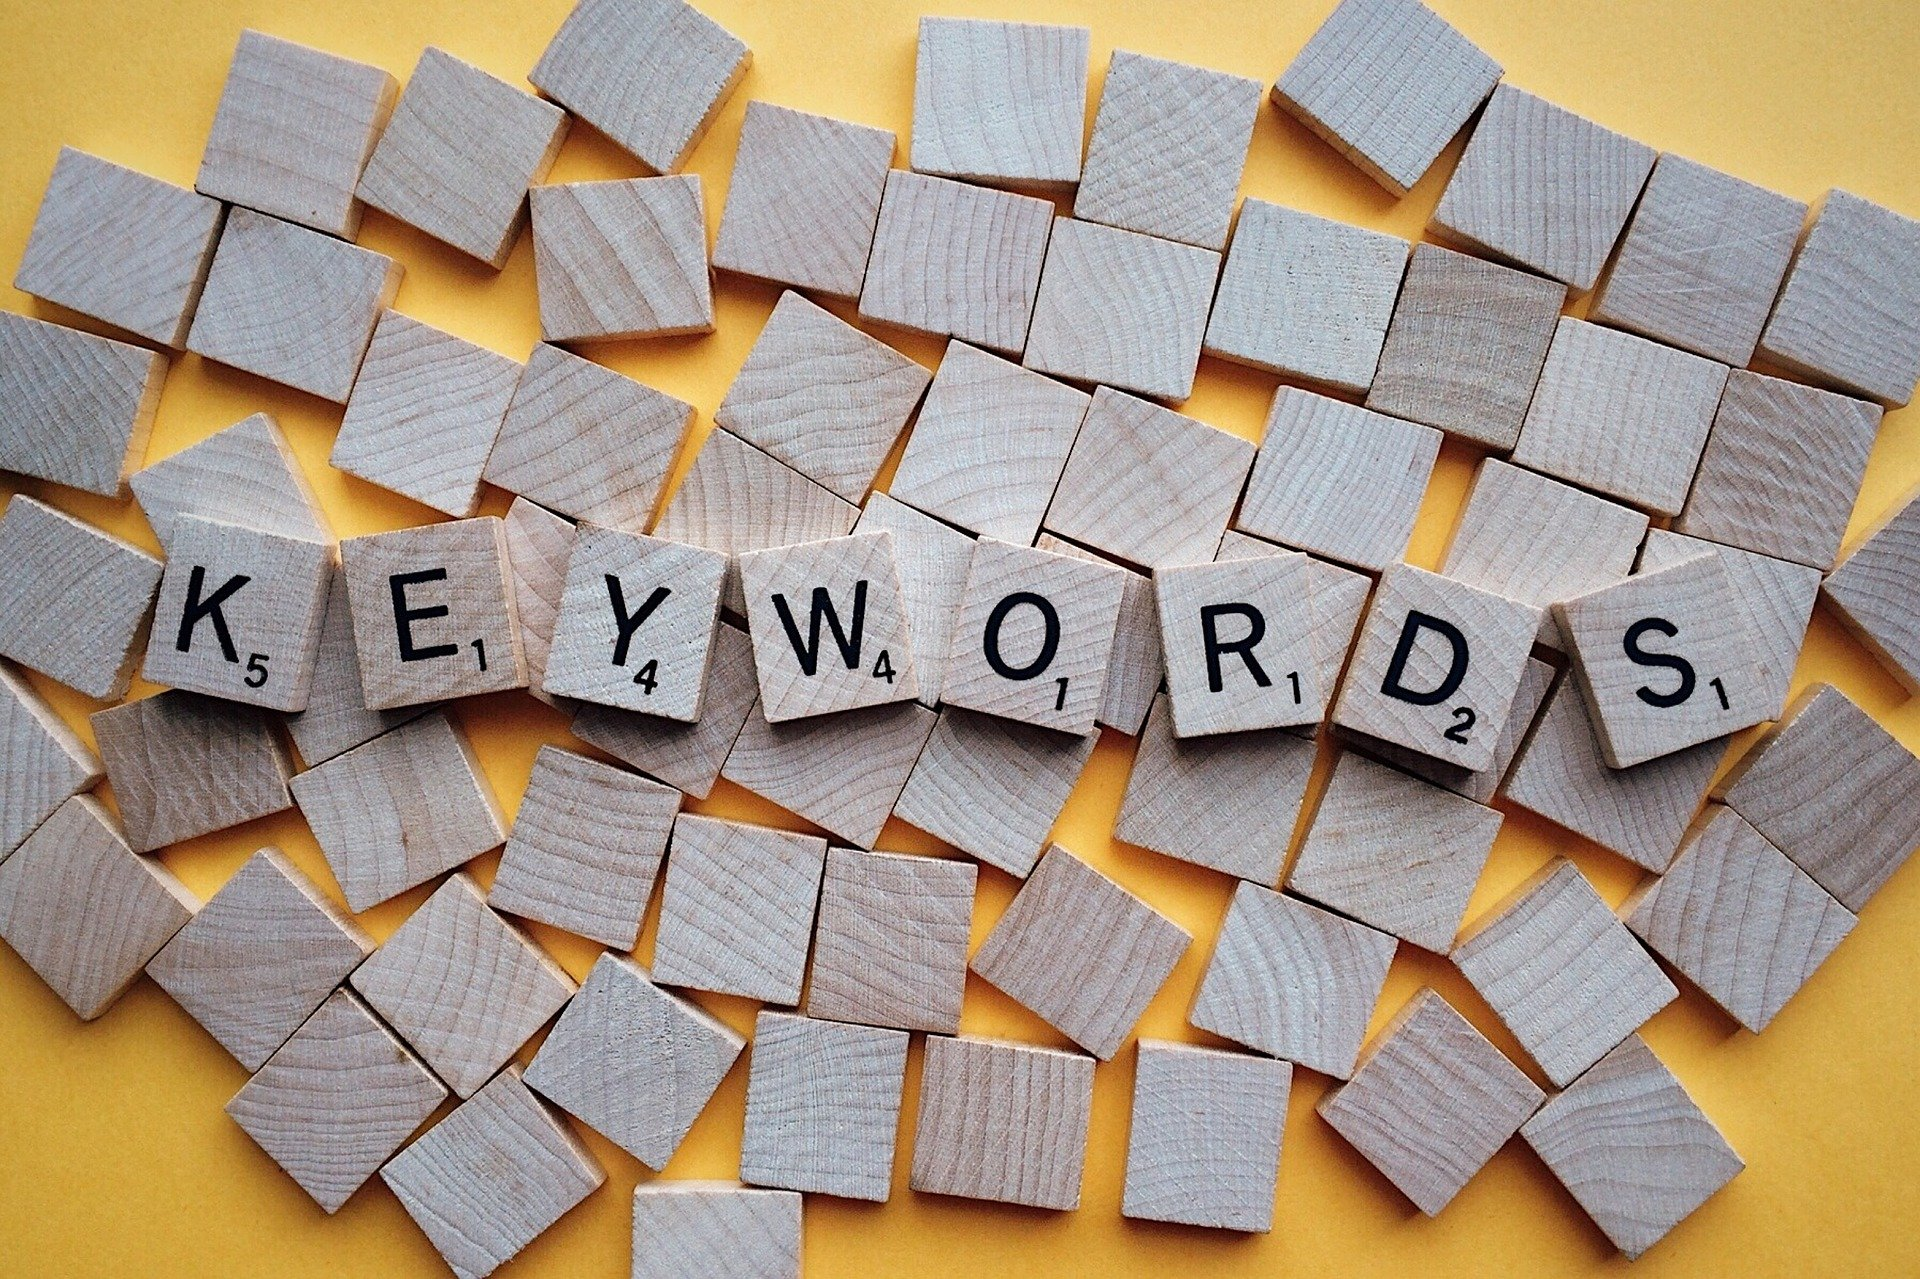 Seo Best Practices 2020 Long Tail Keywords: How To Use SEO Effectively For Your Small Business